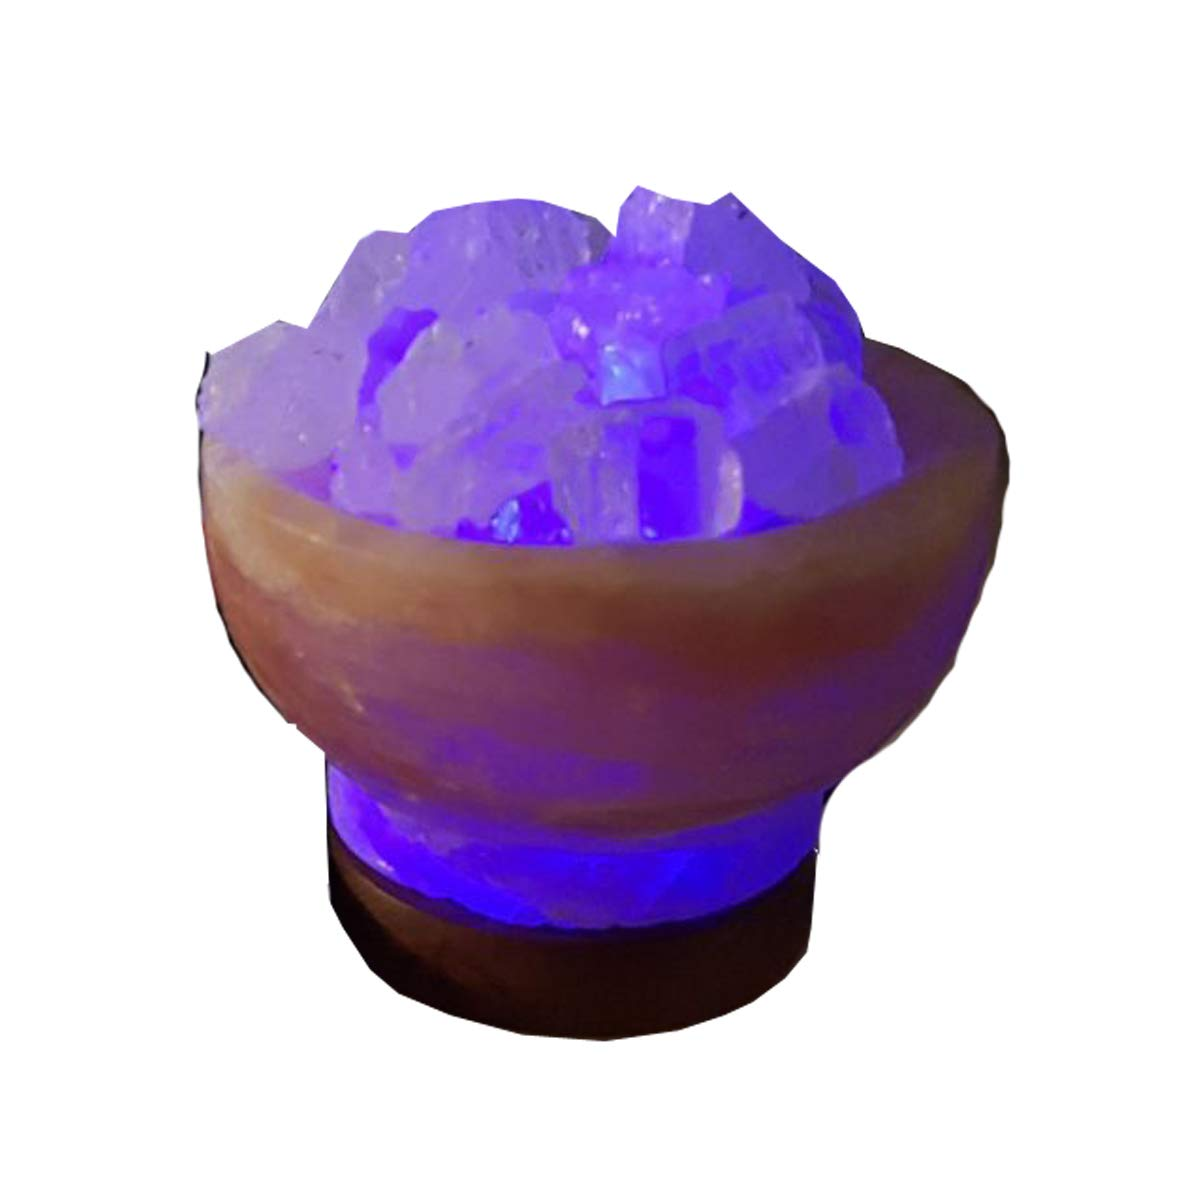 Himalayan Salt - Himalayan Pink salt USB Fire bowl color changing - different color salt crystals filled in salt bowl - Directly comes from Himalayan Mountains - AMAZING Health benefits